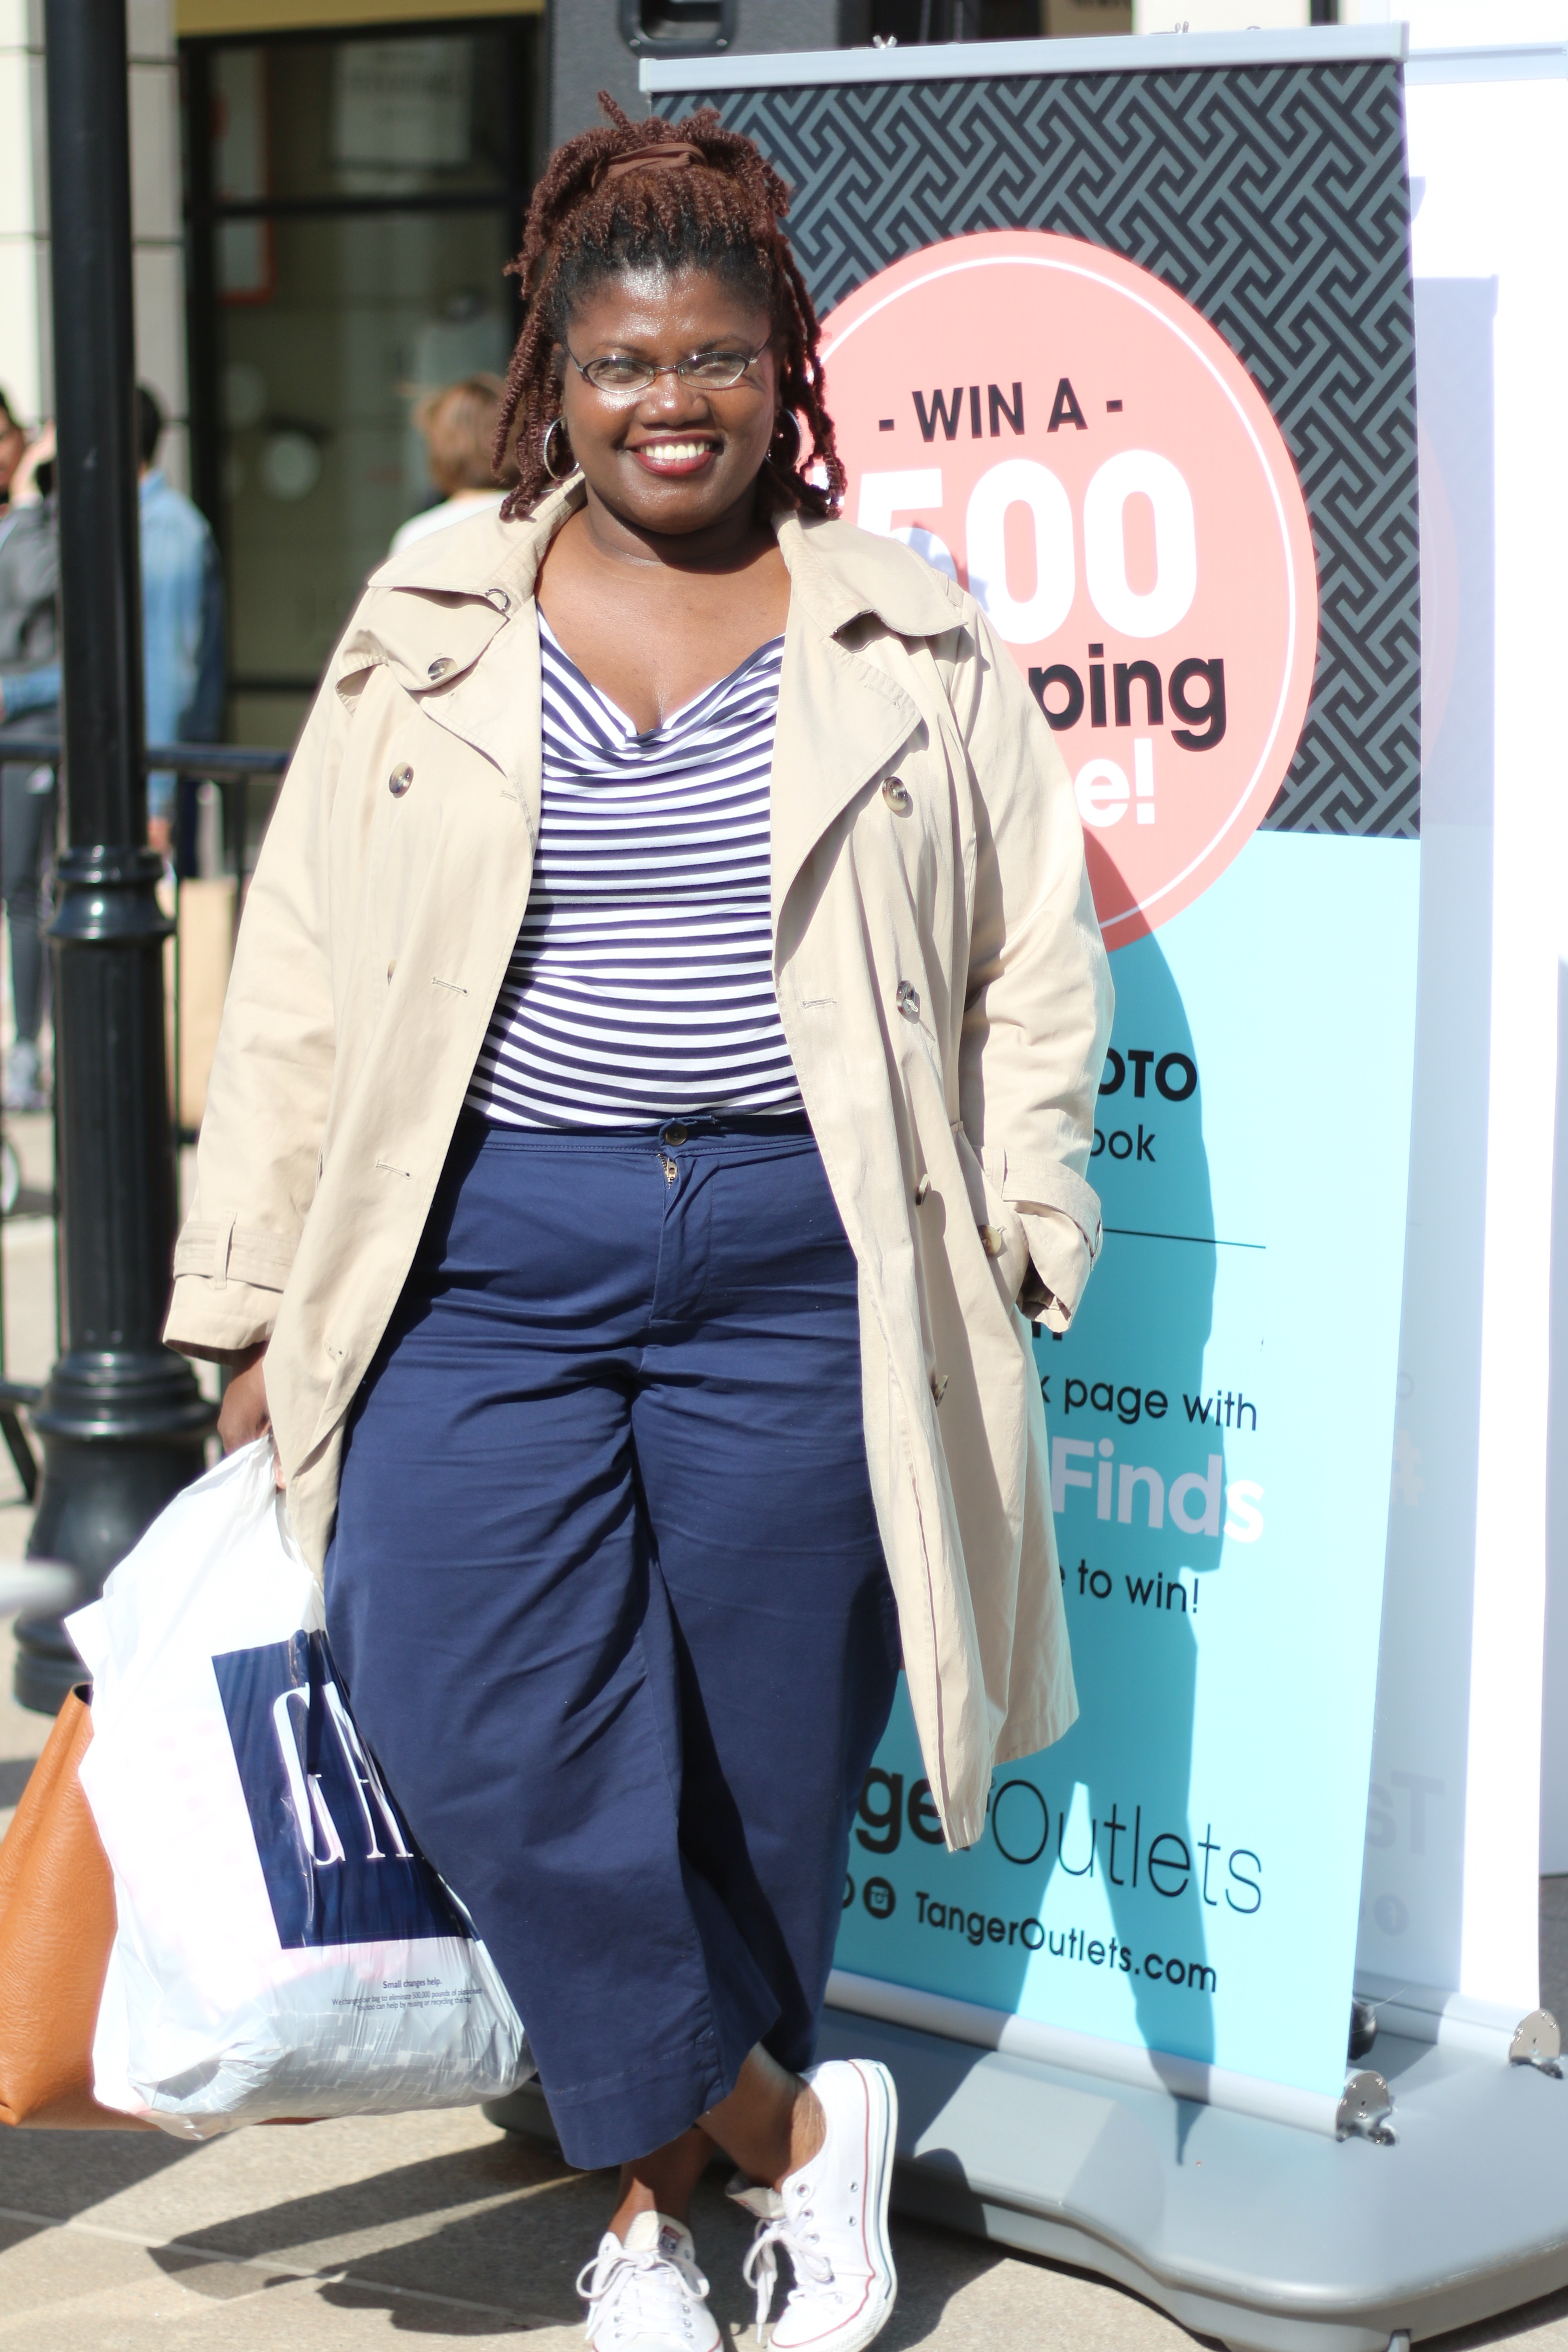 people style watch, people style watch magazine, tanger outlets, tanger outlet deer park, outlets, gap, old navy, plus size blogs, plus size bloggers, plus size, curvy women, curvy blogs, curvy bloggers, curvy girls, shopping, plus size pants, plus size cropped pants, trench coat, london fog, plus size trench coats, stripes, stripe shirts, spring, converse sneakers,